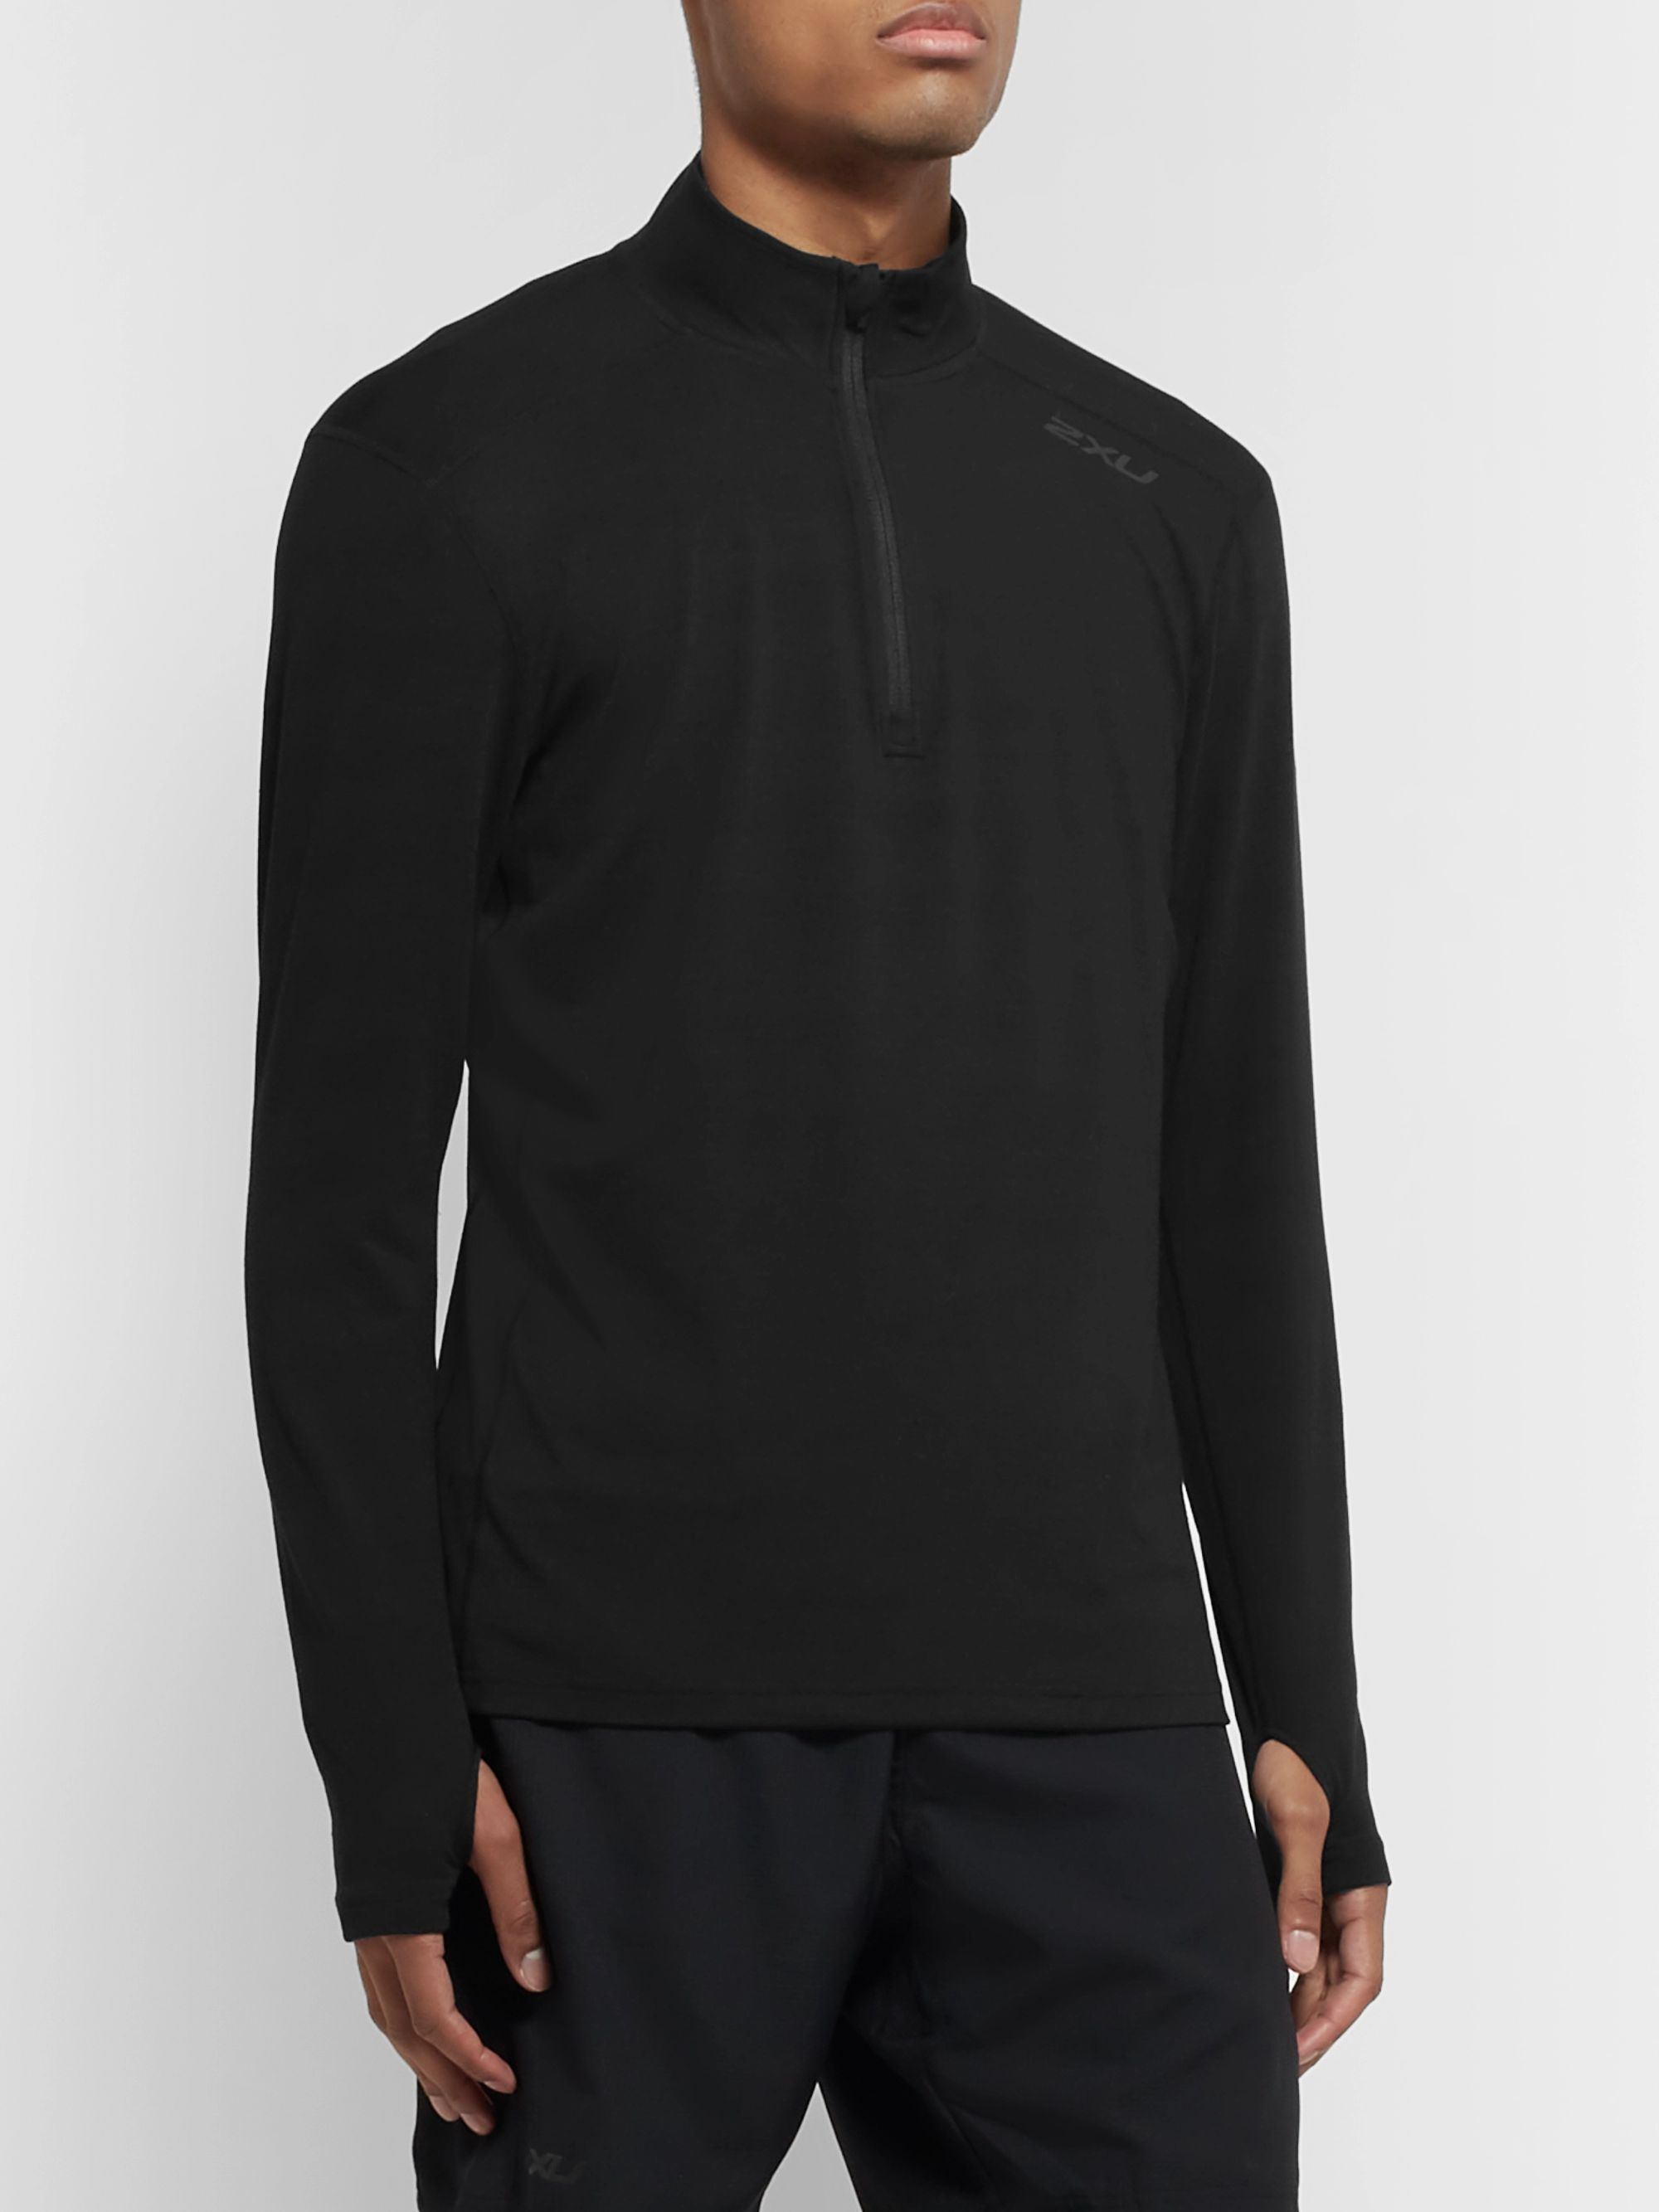 2XU Slim-Fit BIO-HEAT X Half-Zip Top